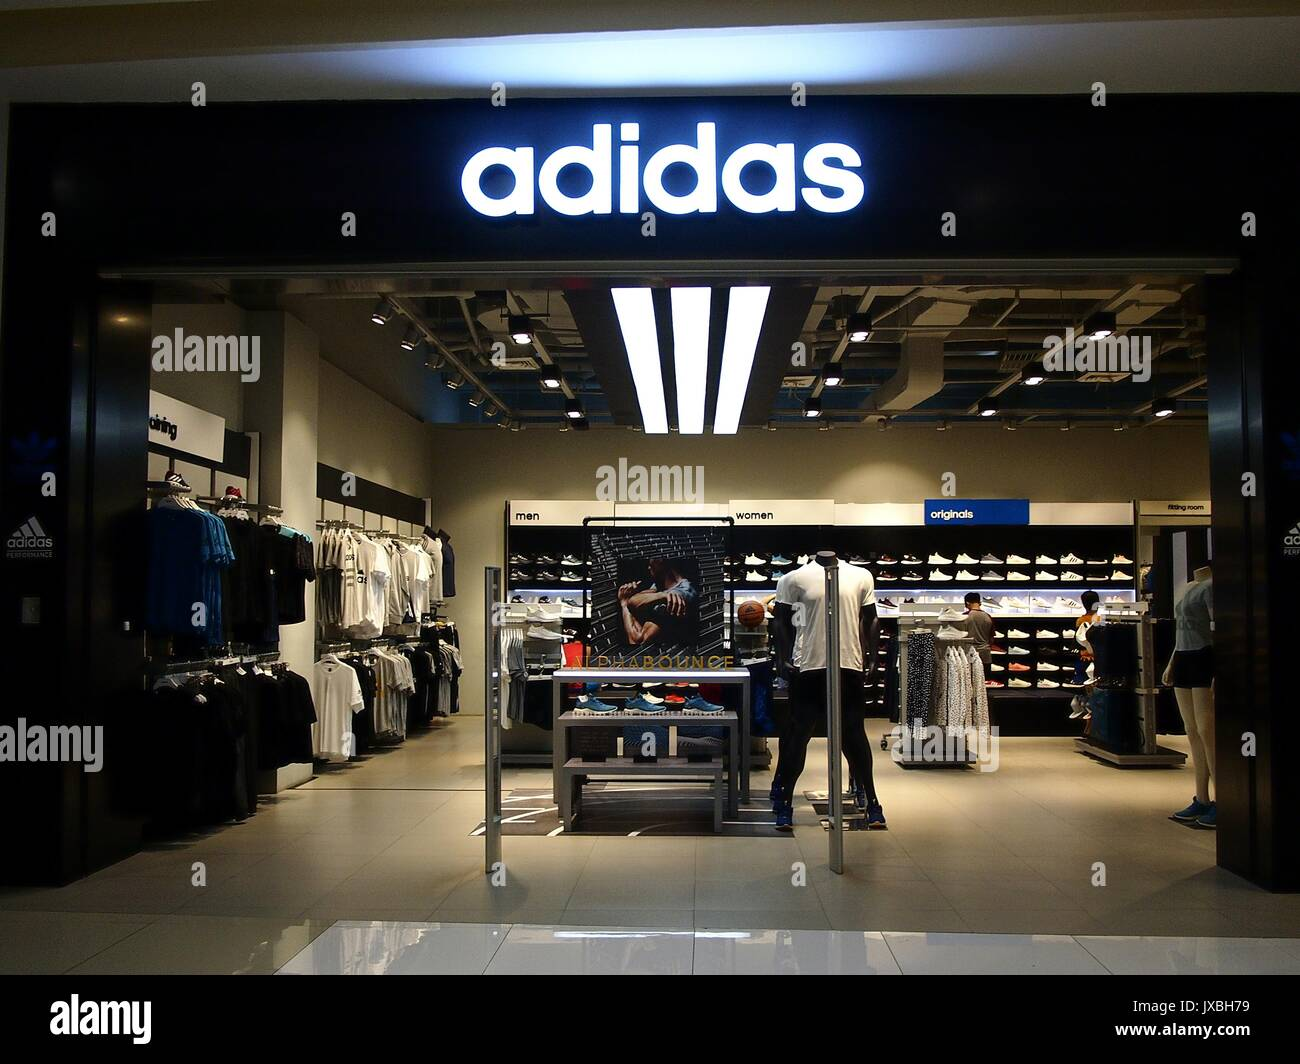 3c5ef468474 Robinsons Place Stock Photos   Robinsons Place Stock Images - Alamy